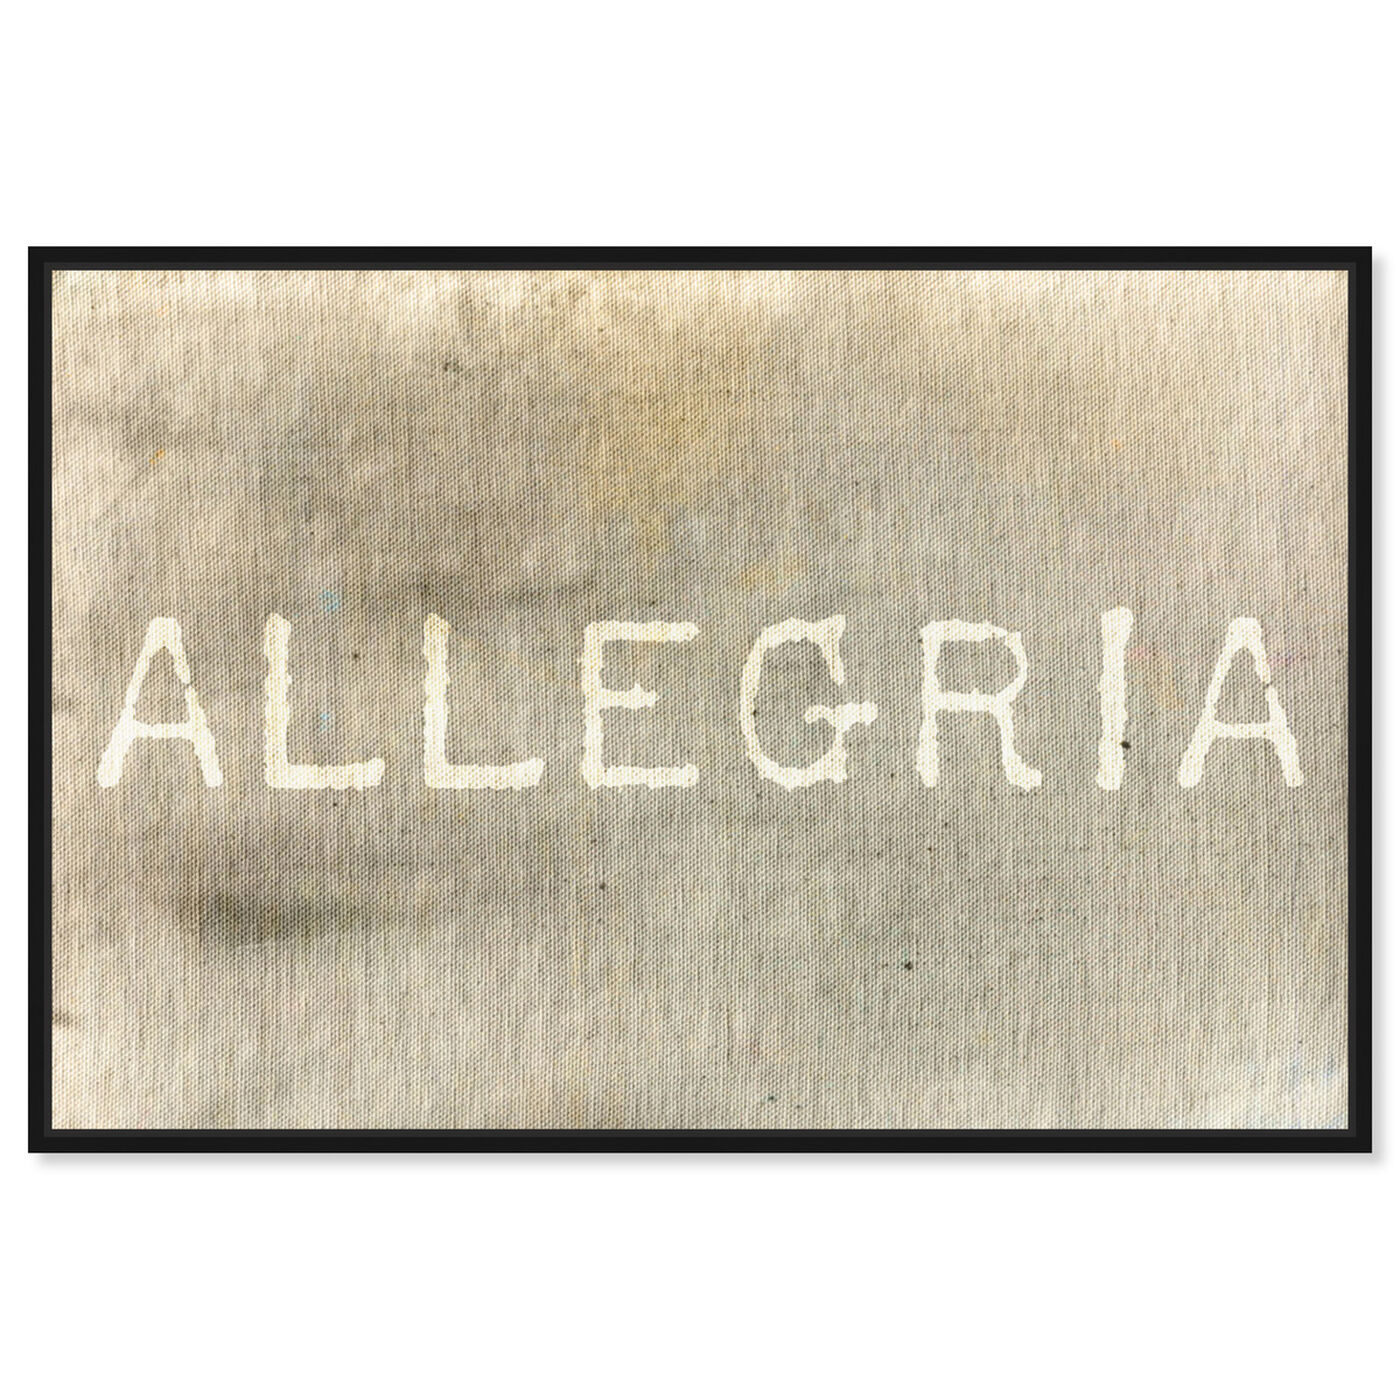 Front view of Allegria featuring typography and quotes and inspirational quotes and sayings art.